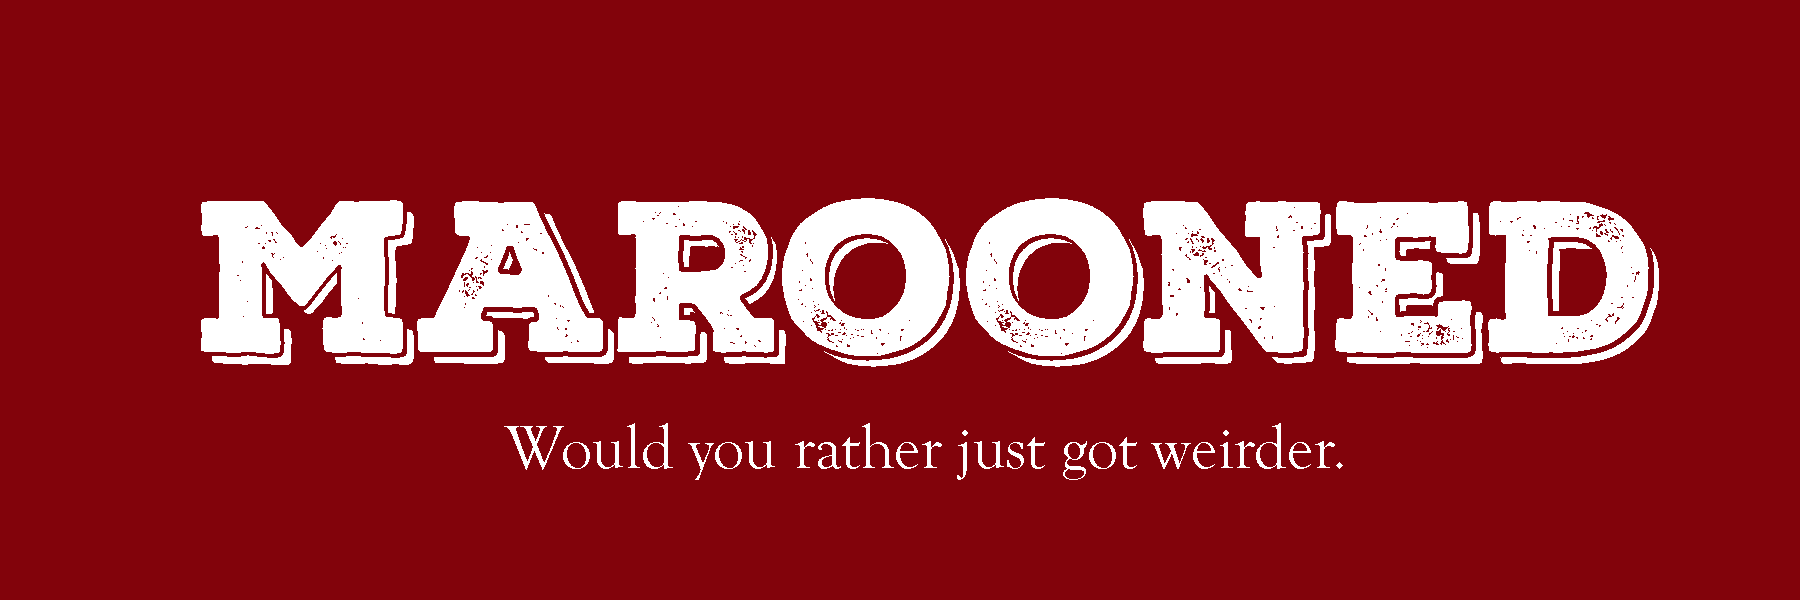 marooned text logo 2.png